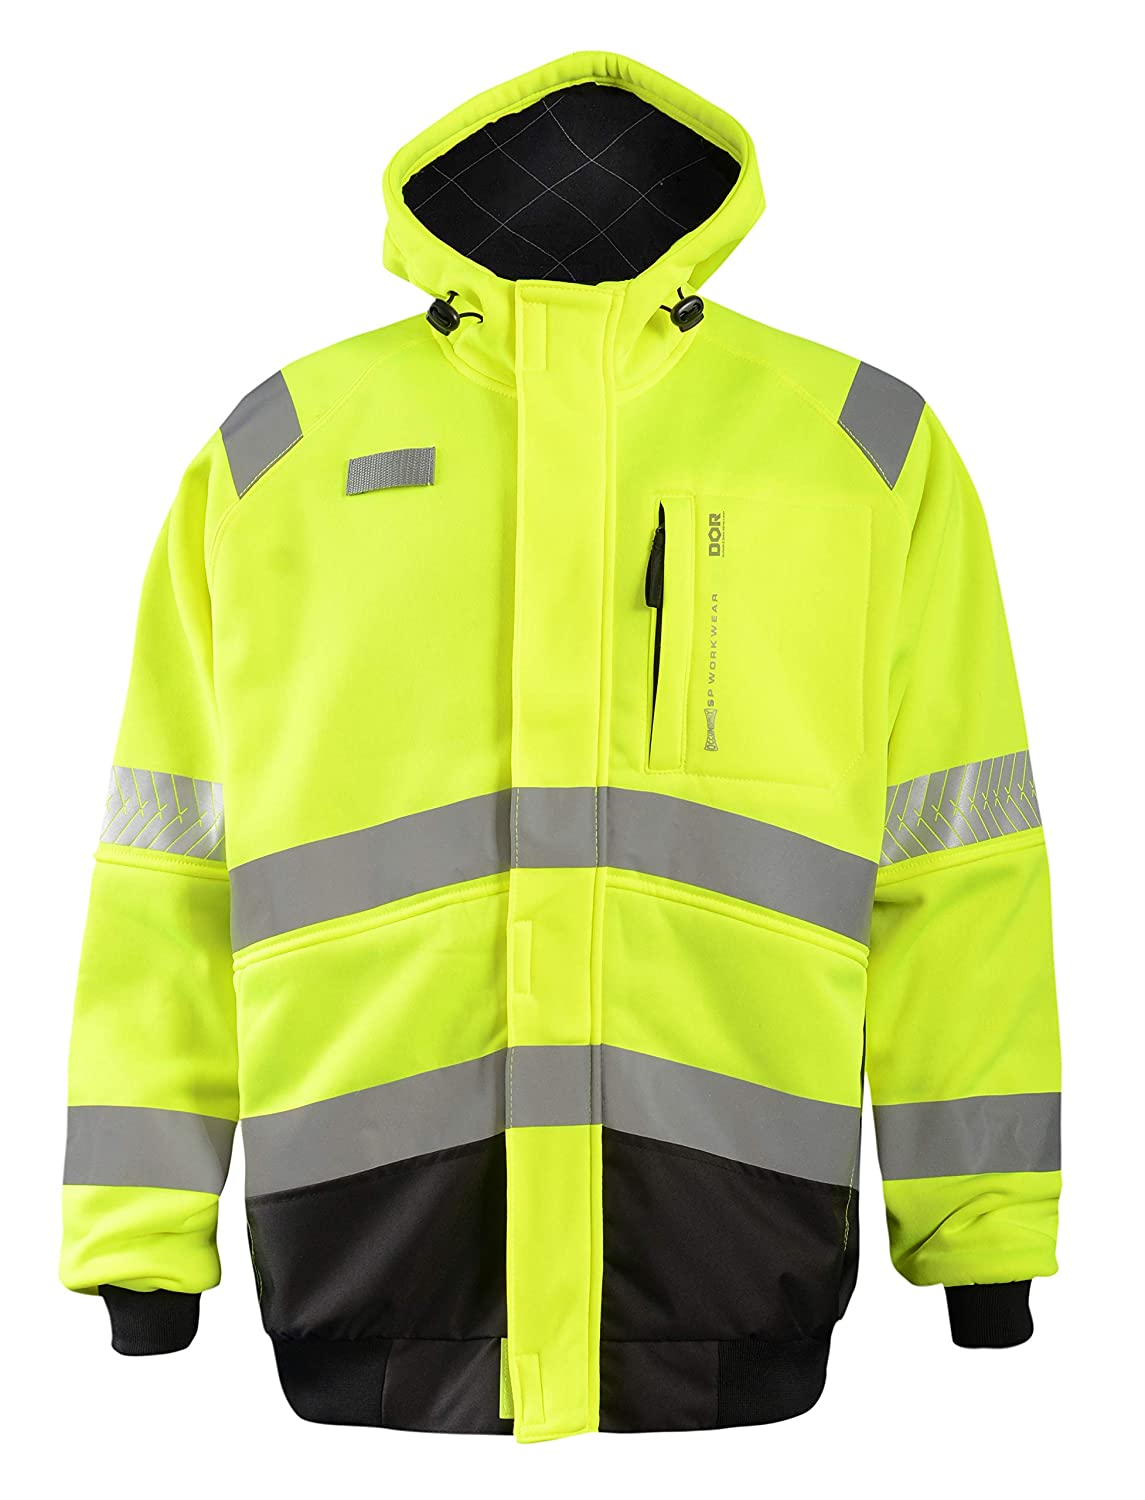 OccuNomix SP-CROSSJKT-Y2X 3 Season Safety Performance Workwear Premium Fleece Crossover Jacket with Quilted Flannel-Lined Hood, EverShield DOR Treated, Class 3, 100% ANSI Polyester, 2X-Large, Yellow